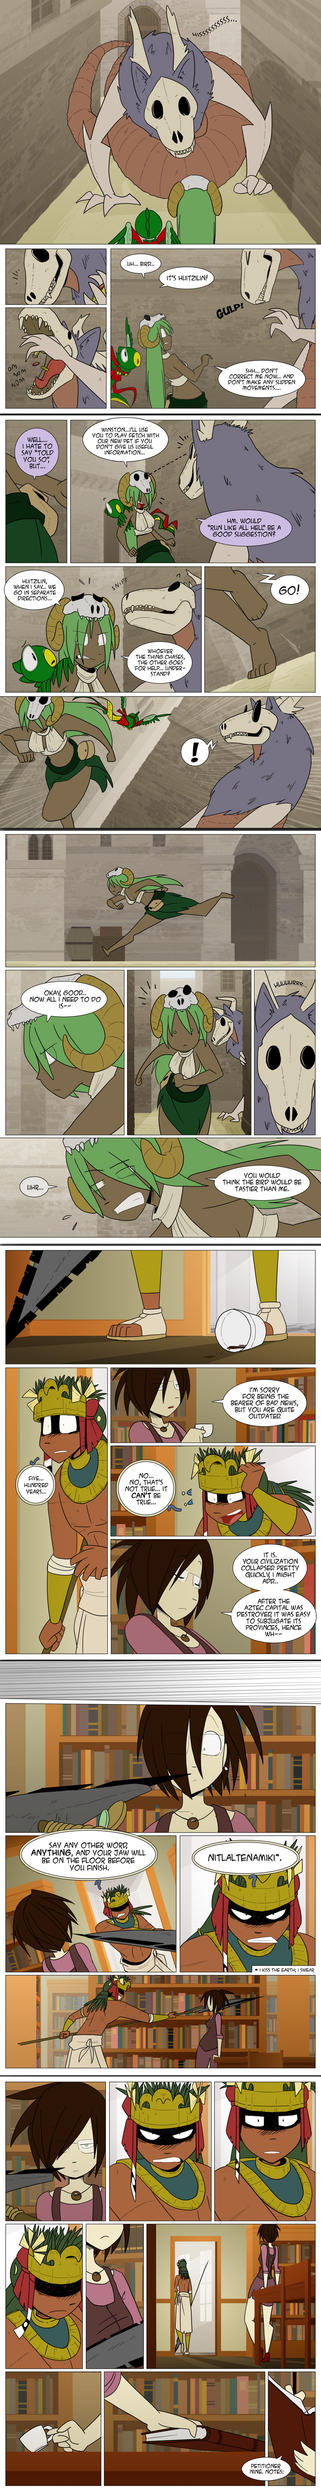 Burning Avalon Round 3: Page 4 by Tickity-Tock